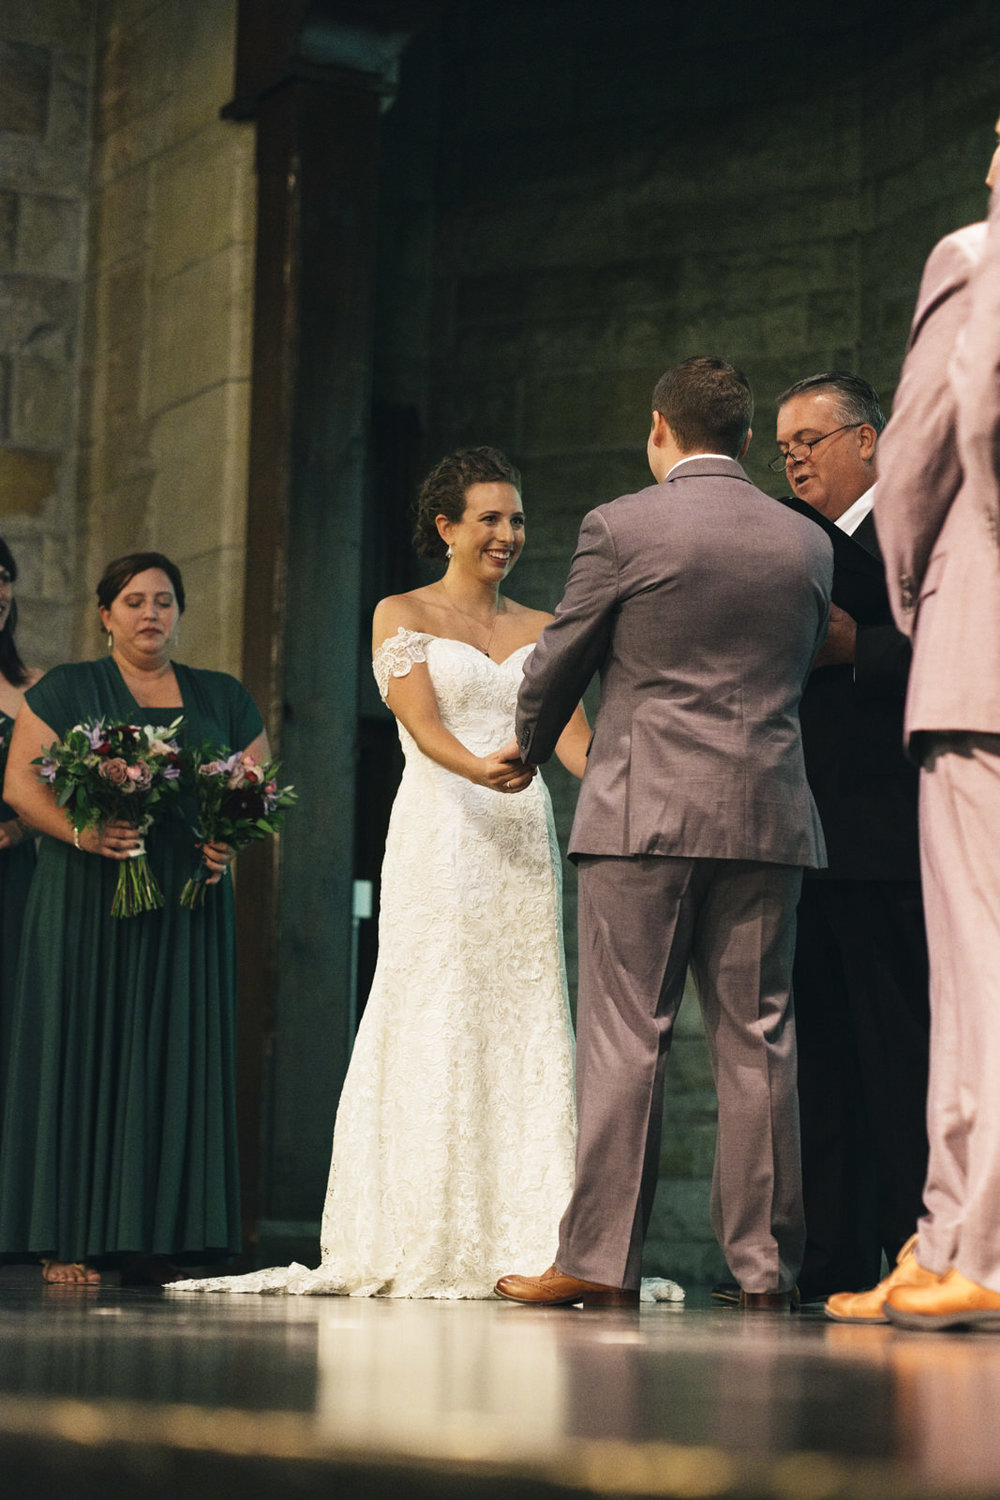 Ohio couple gets married in vintage, historical theater at the Toledo Zoo for their summer wedding in September.